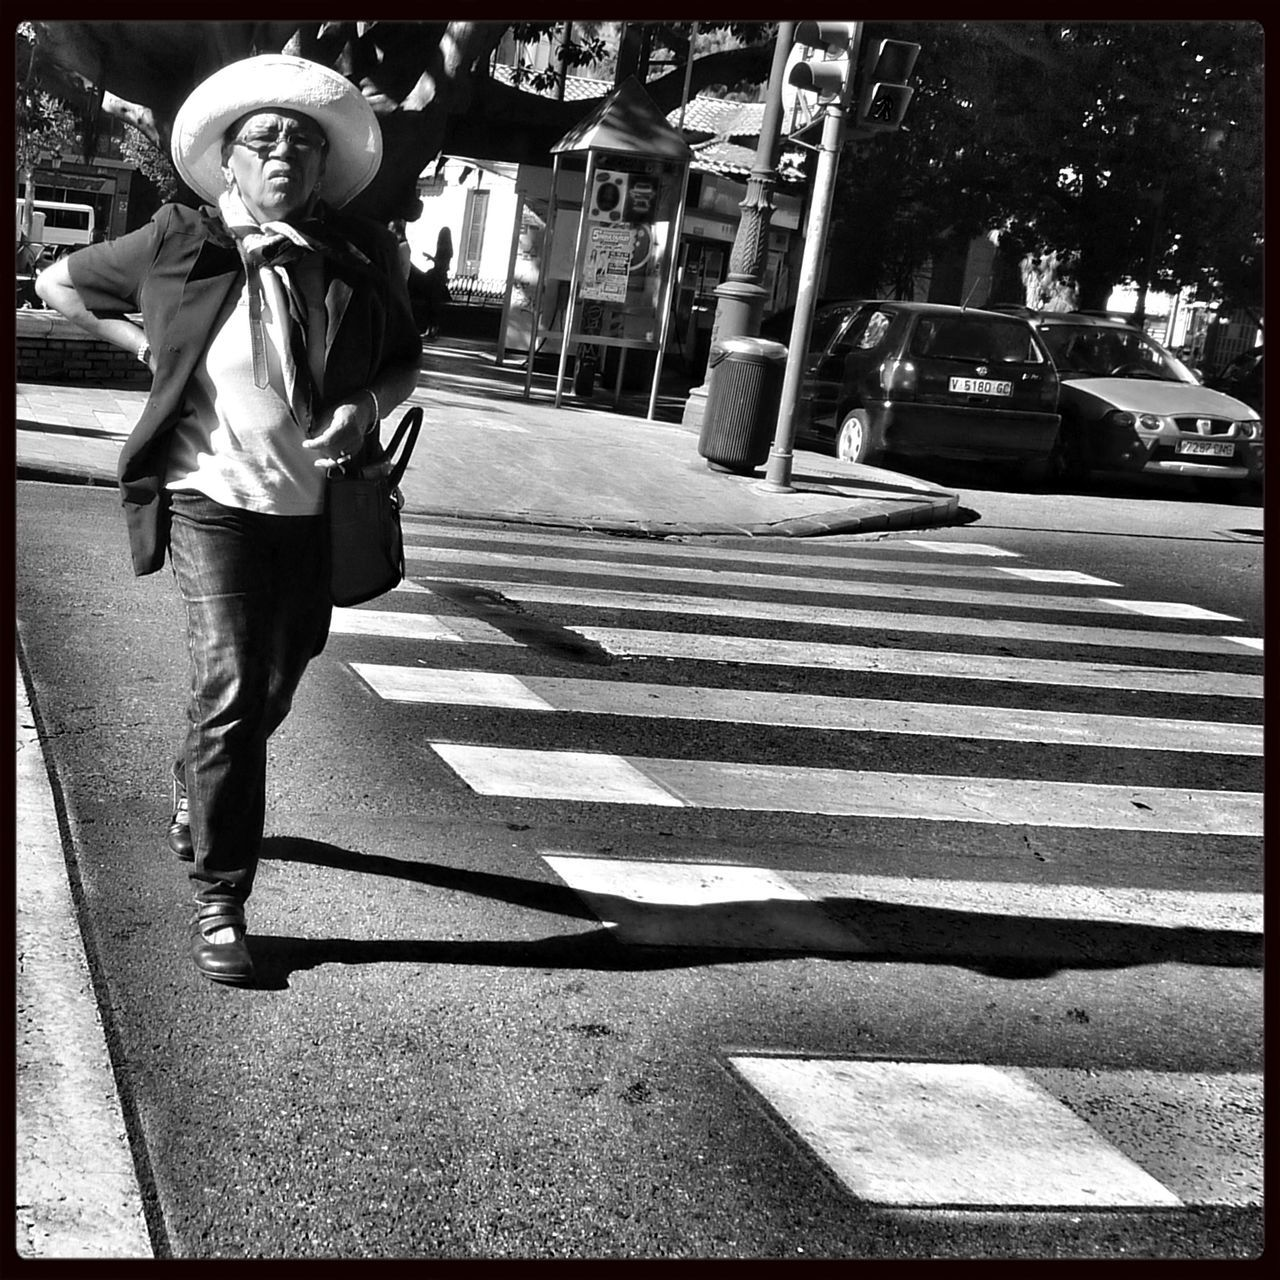 Shootermag Streetphotography Blackandwhite Leica D-Lux 4